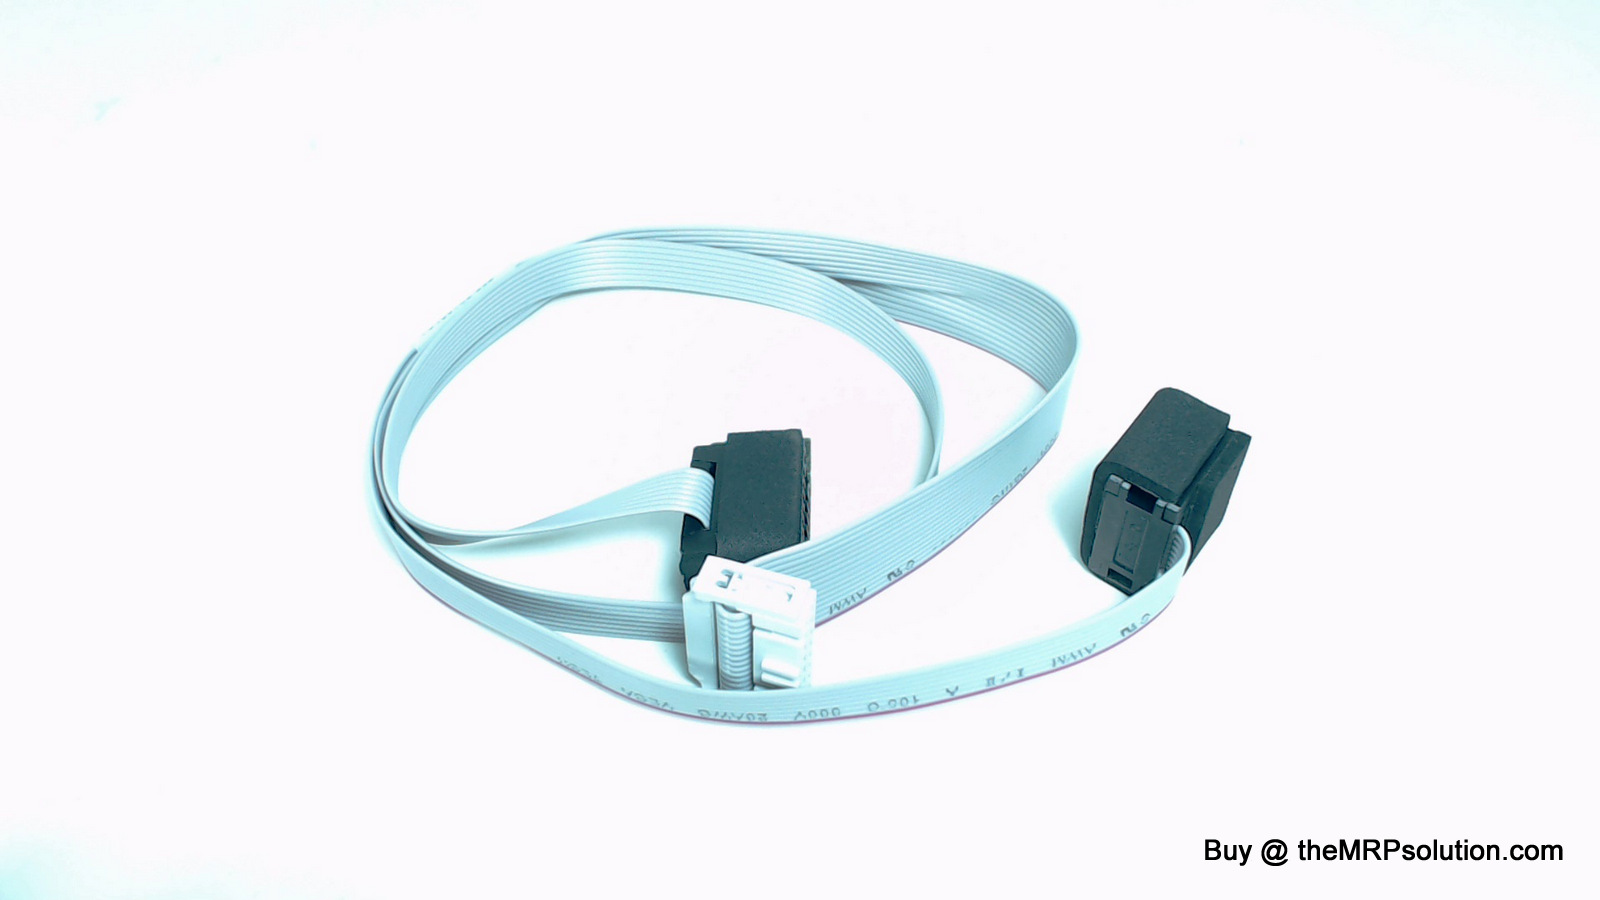 IBM 08H7248 CABLE, TRACTOR ASSY, 4247 Refurbished